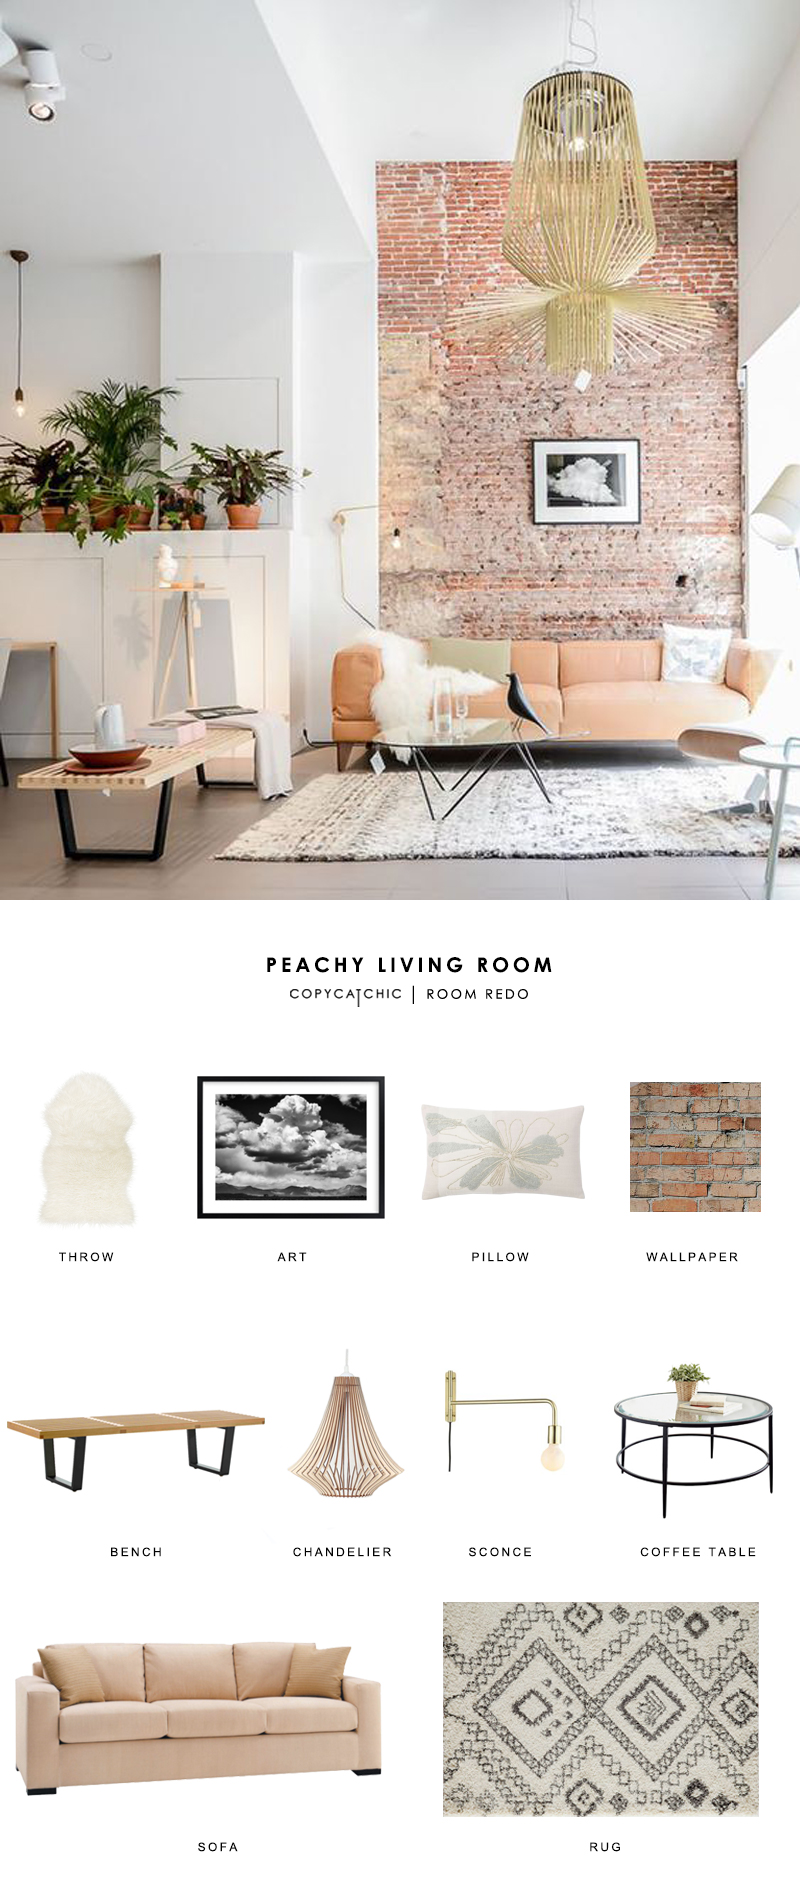 Copy Cat Chic Room Redo | Peachy Living Room - copycatchic